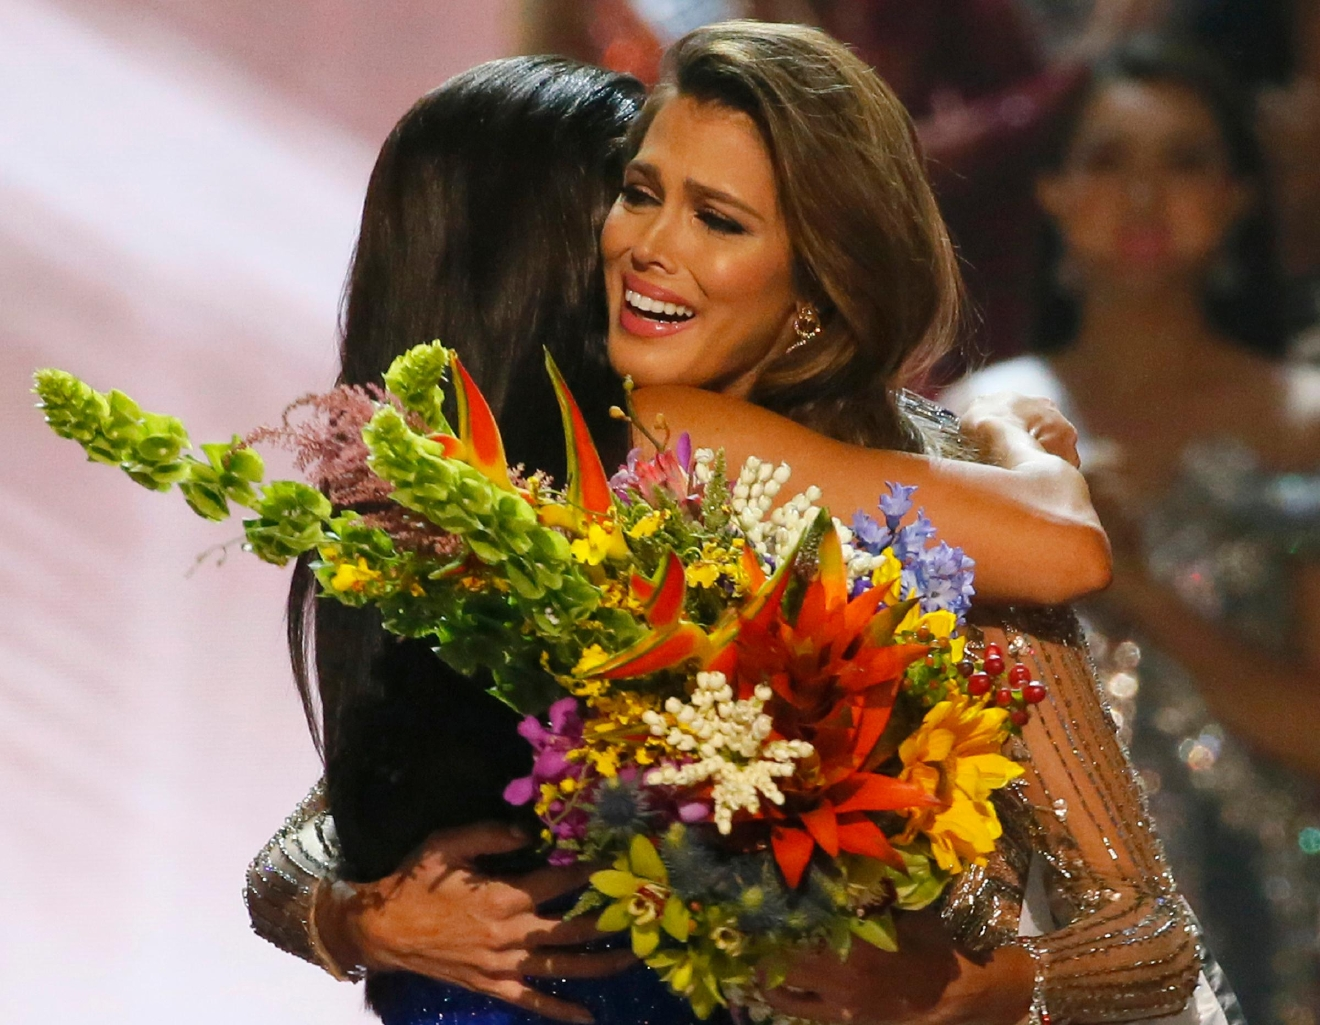 Miss Universe 2016 Iris Mittenaere, right, of France is hugged by Miss Universe 2015 Pia Wurtzbach following coronation Monday, Jan. 30, 2017, at the Mall of Asia in suburban Pasay city, south of Manila, Philippines. (AP Photo/Bullit Marquez)